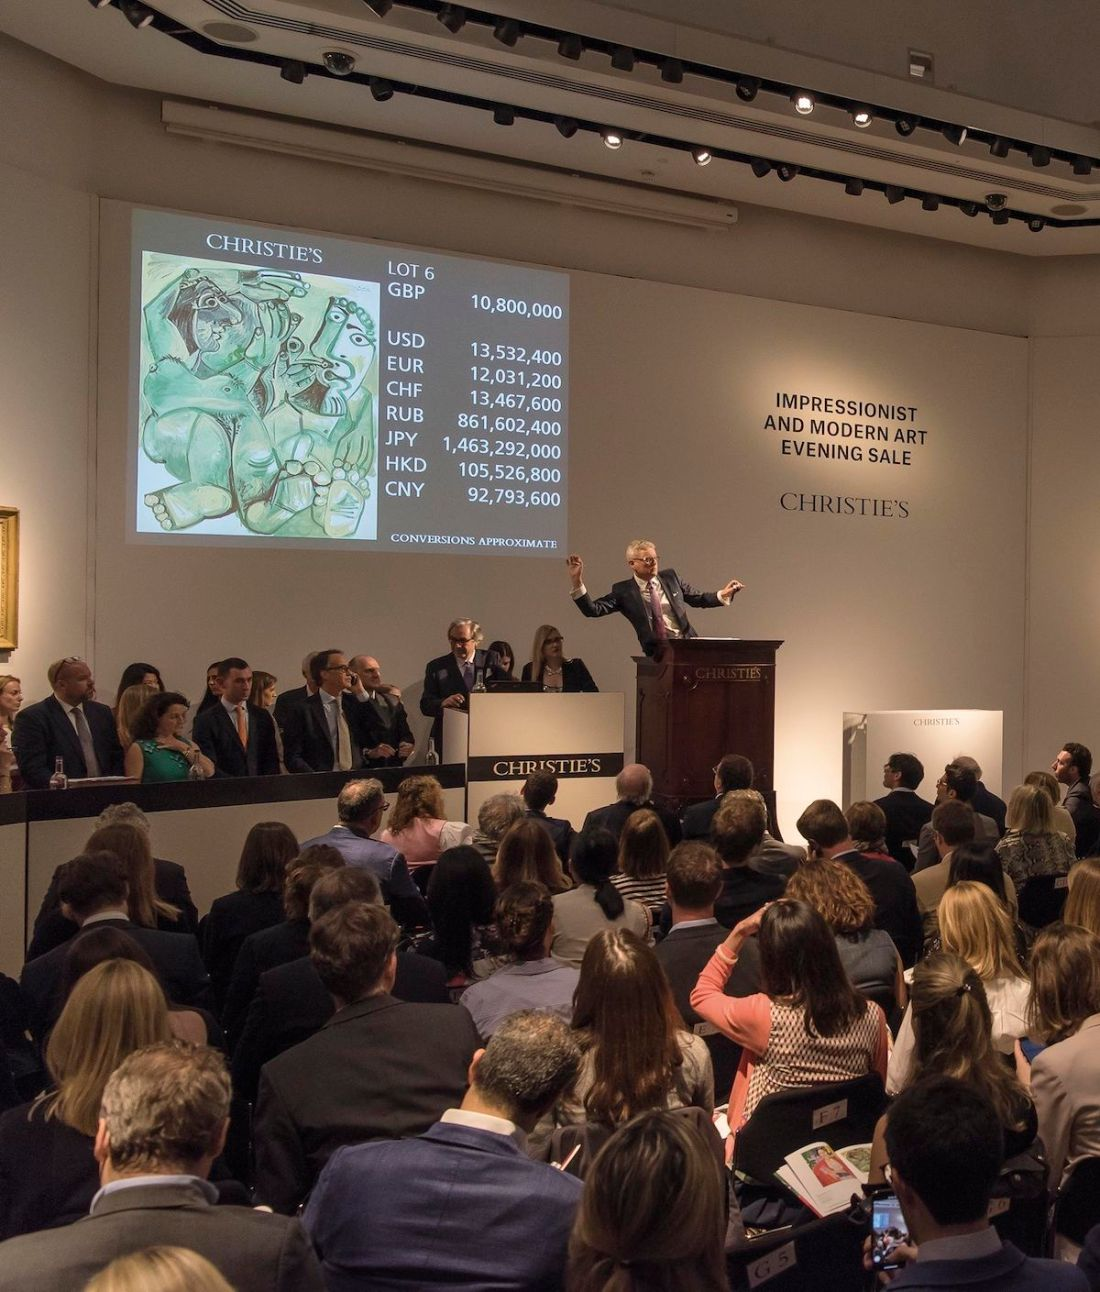 Auctioneer Jussi Pylkkänen at Christie's evening sale of Impressionist and modern art in London. Photo courtesy Christie's.